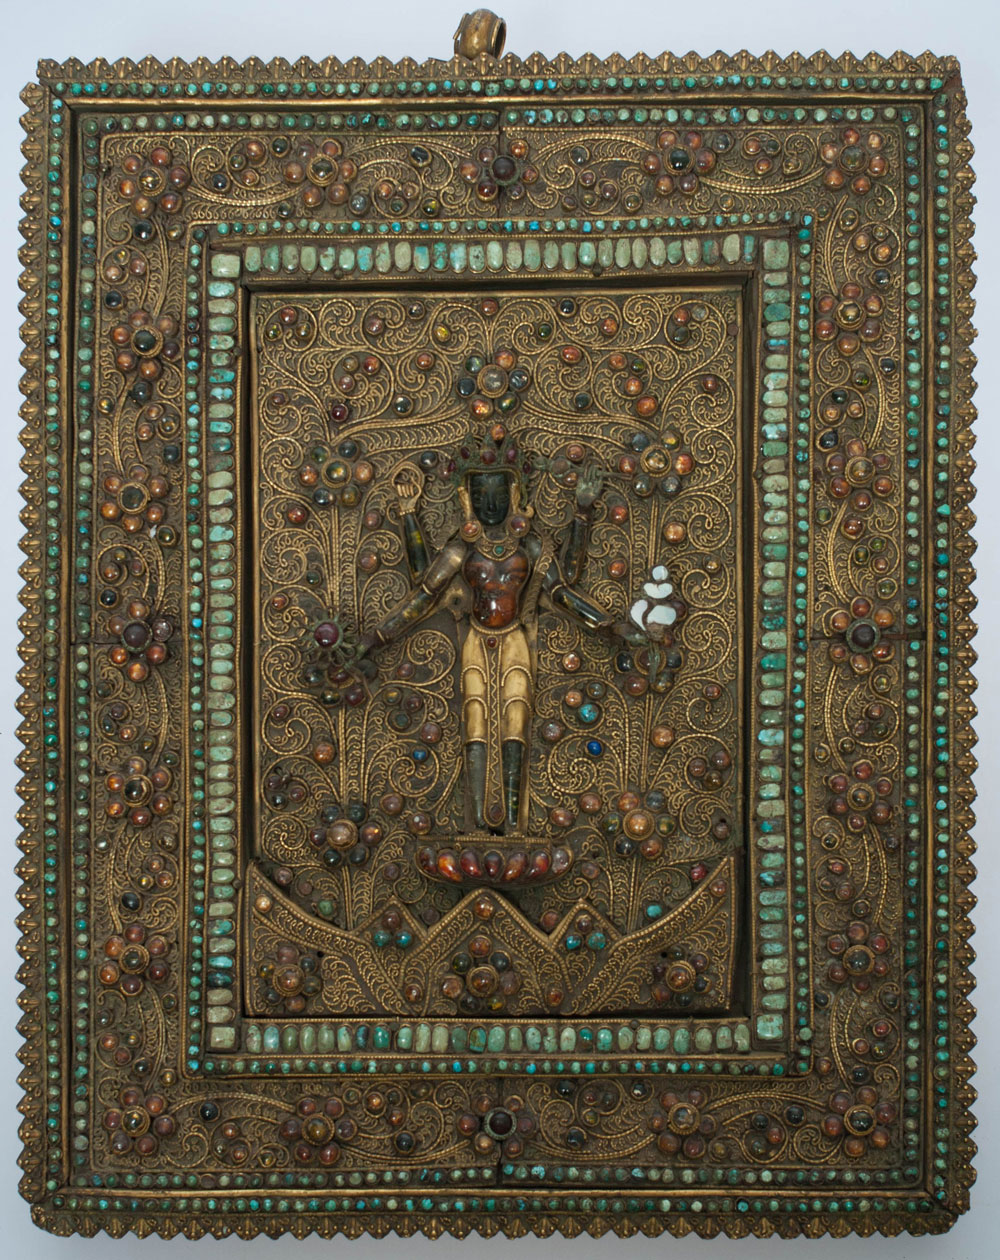 """Bohemian National Hall Robyn Buntin of Honolulu Nepalese Vishnu Plaque, 18th-19th Century, 14-1/4"""" x 11-1/2"""", Gilt bronze, mother of pearl, stones, glass, turquoise"""